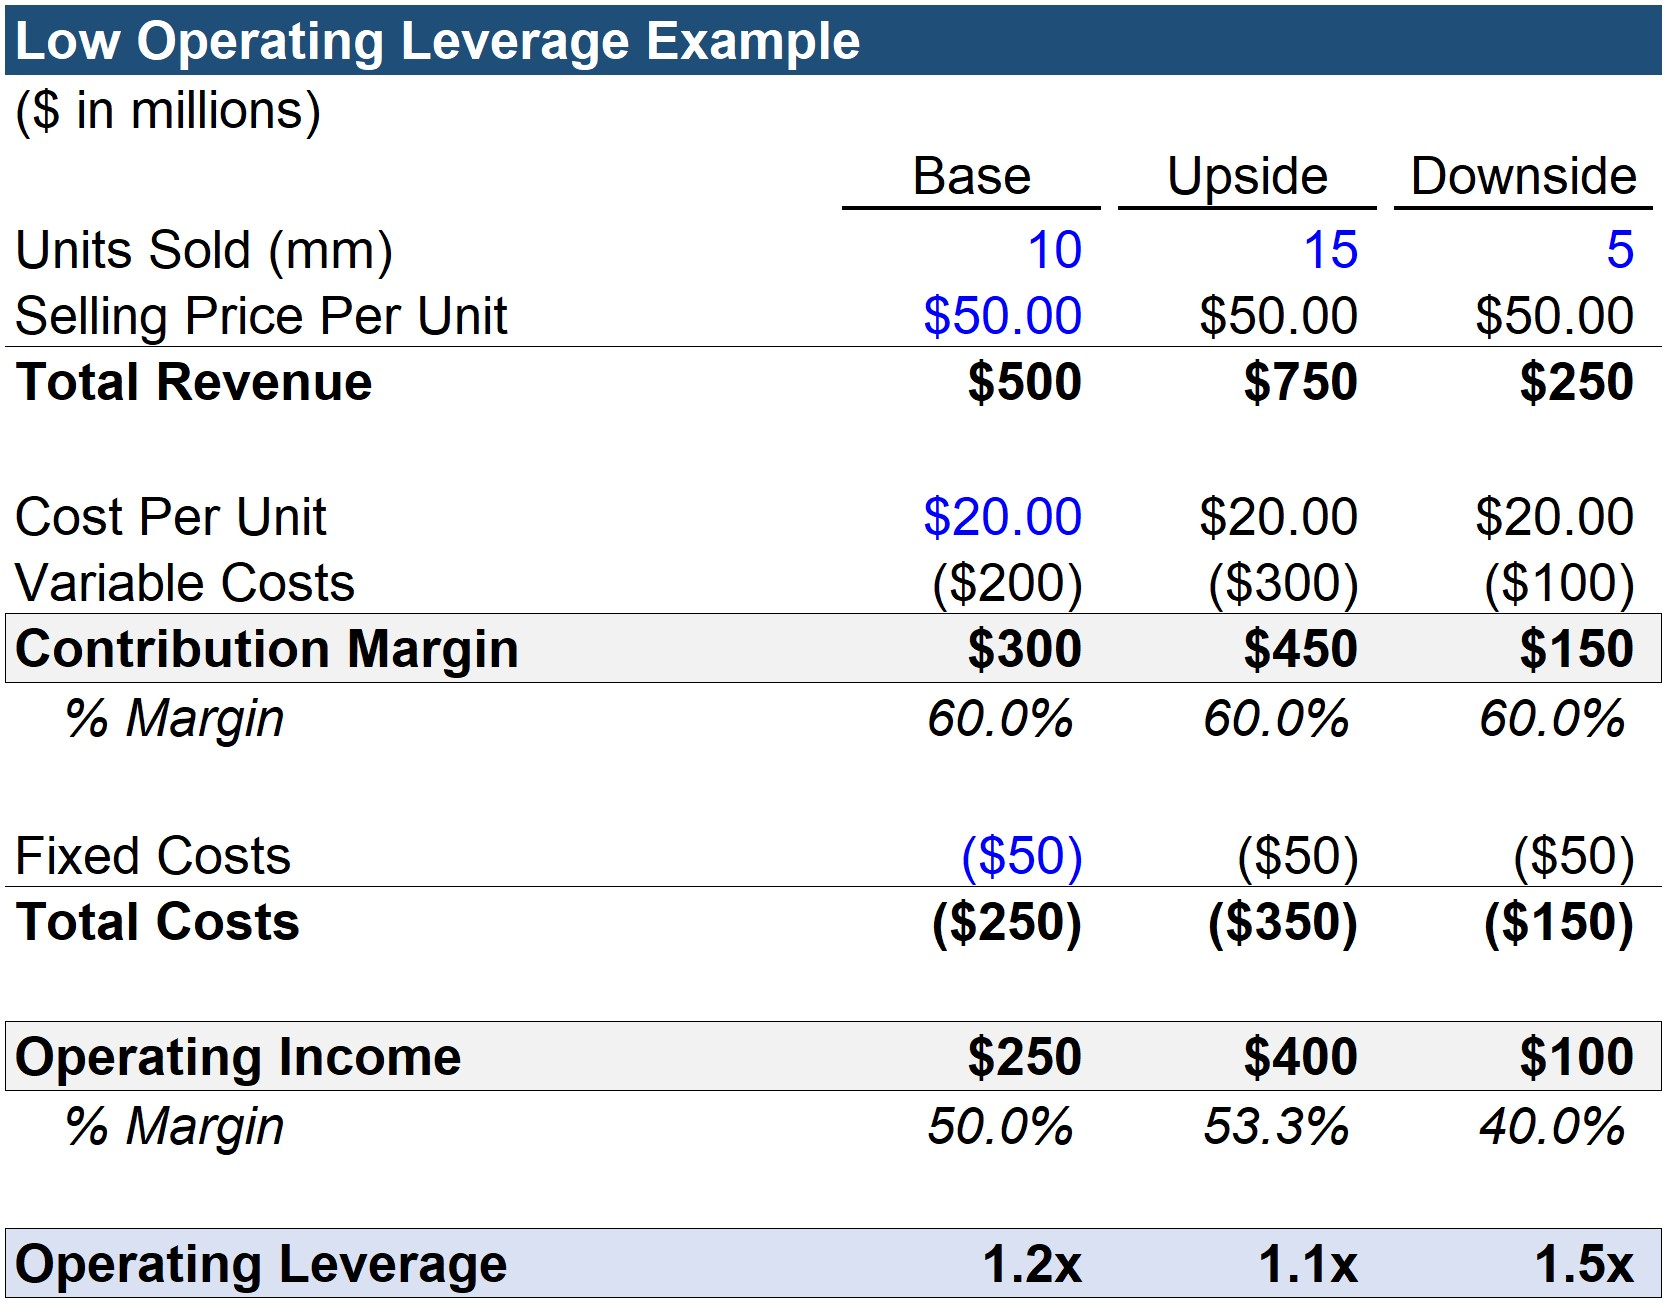 Low Operating Leverage Example